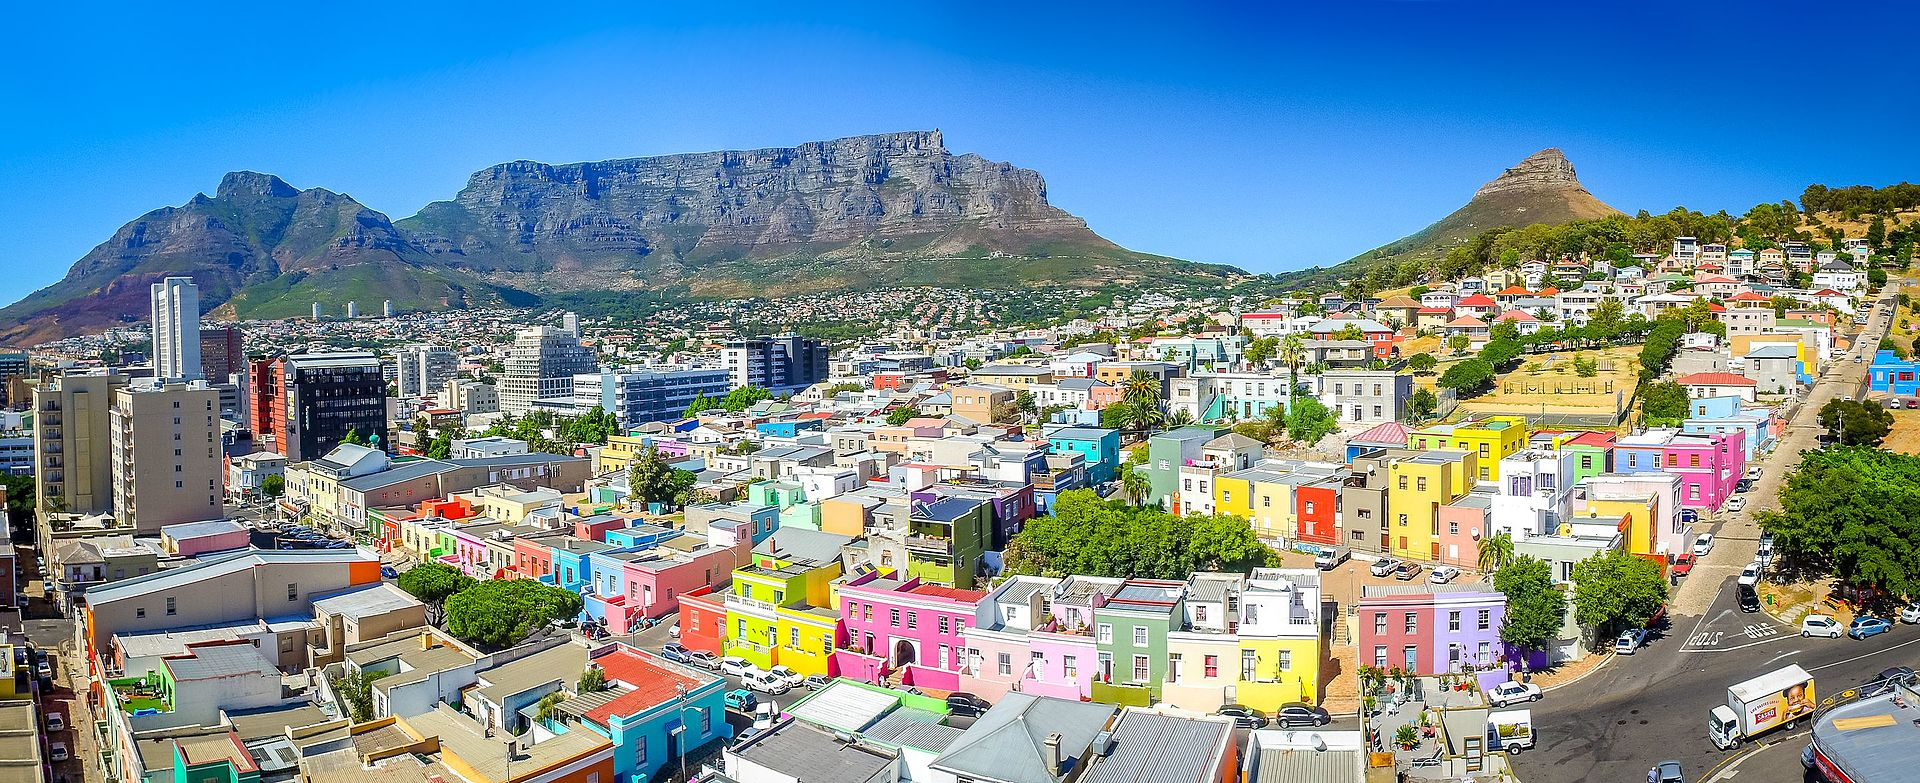 Bo-Kaap area of Cape Town with its distinctive pastel-colored houses in the foreground with the city centre to the left and Table Mountain in the background - Author: SkyPixels - CC BY-SA 4.0